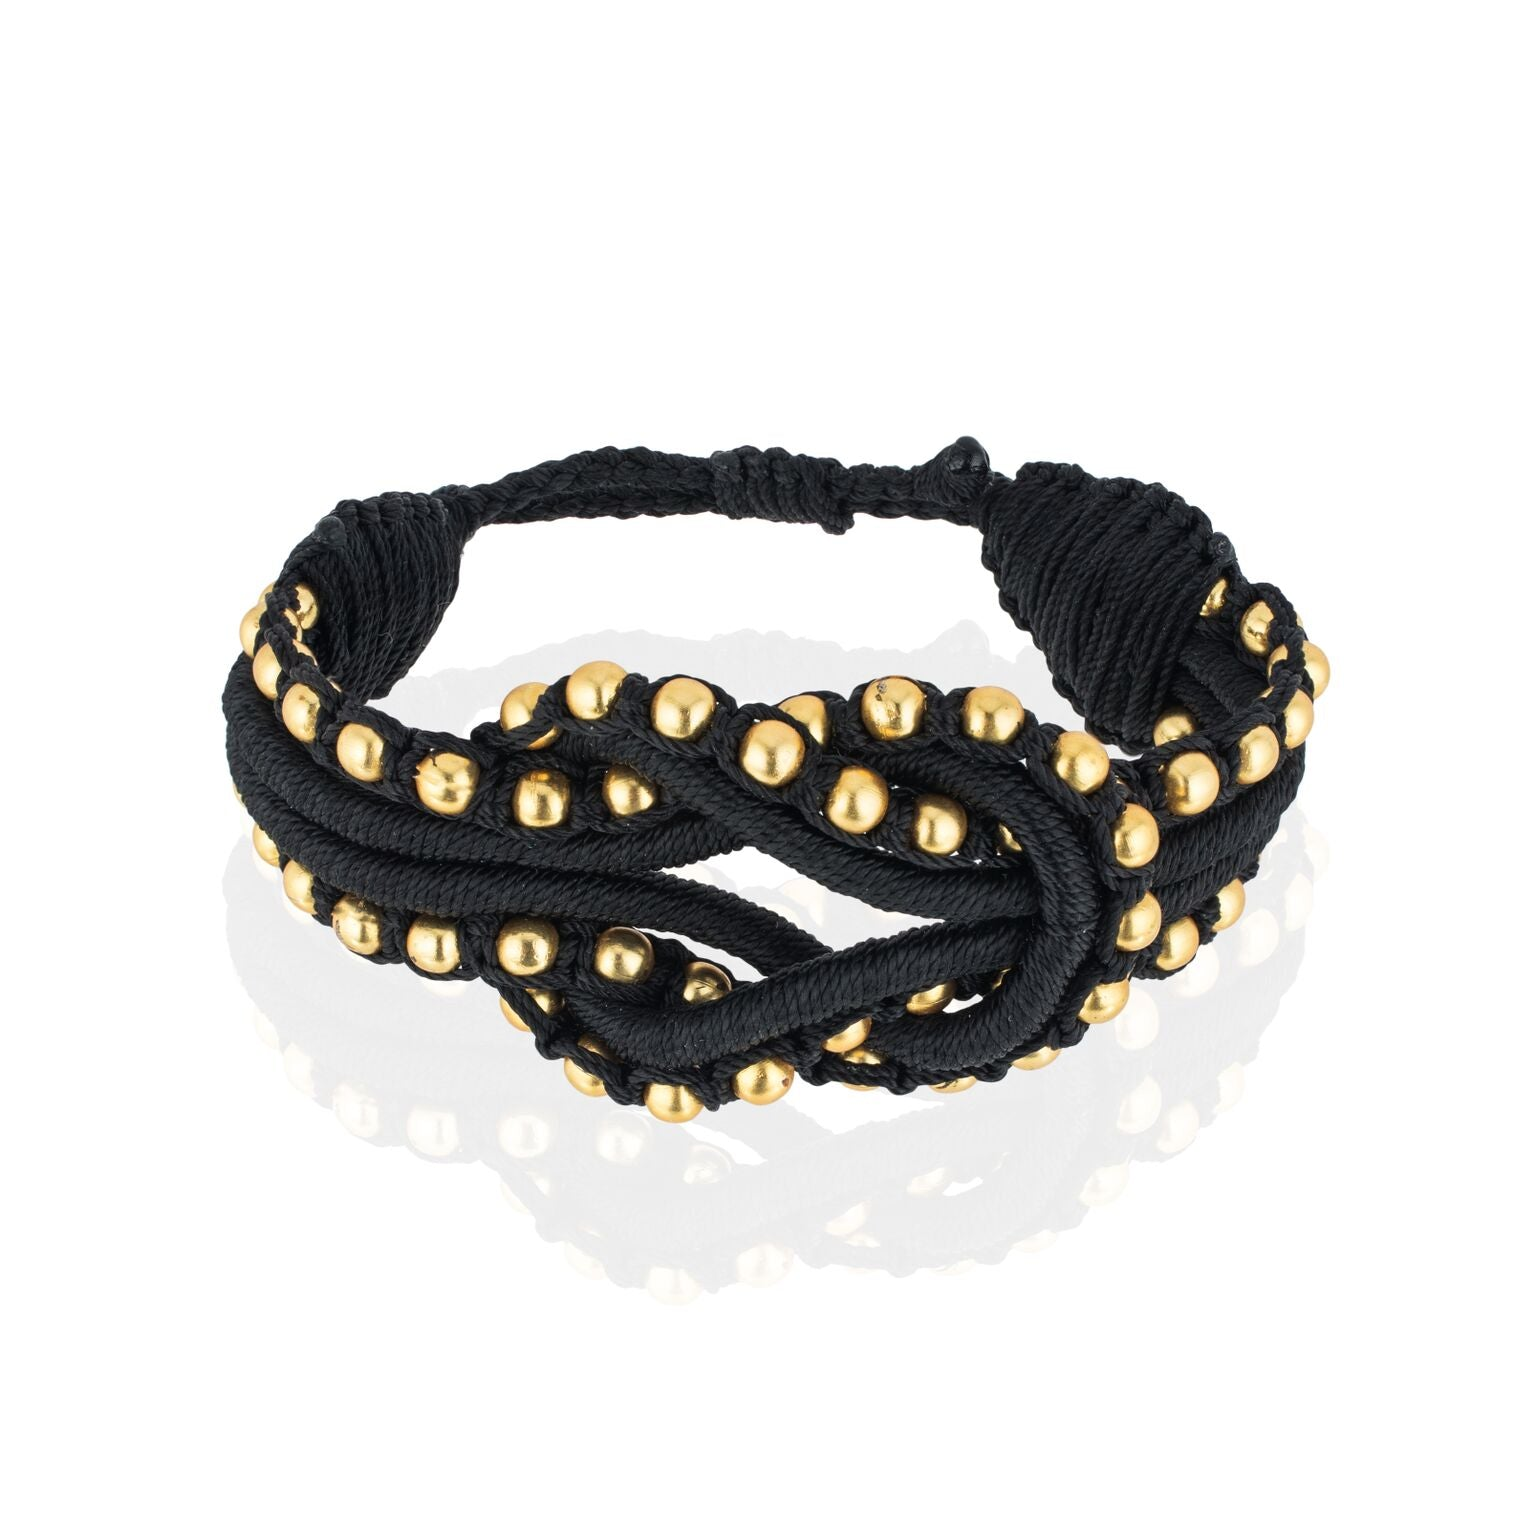 Open Knot Beaded Bracelet- Black & Gold